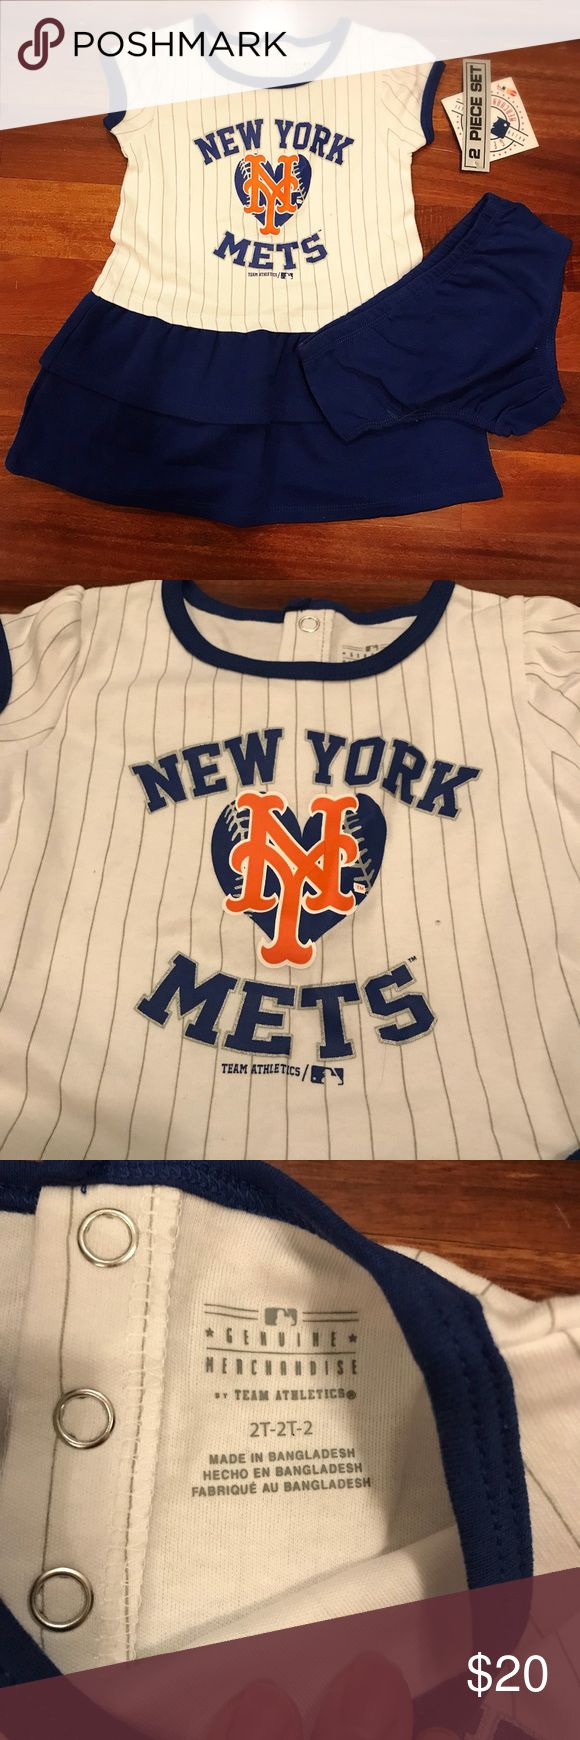 NWT Mets two piece outfit 2T Cute two piece outfit for toddlers. Size 2T. New with tags. Genuine MLB Merchandise. Genuine MLB Merchandise Matching Sets